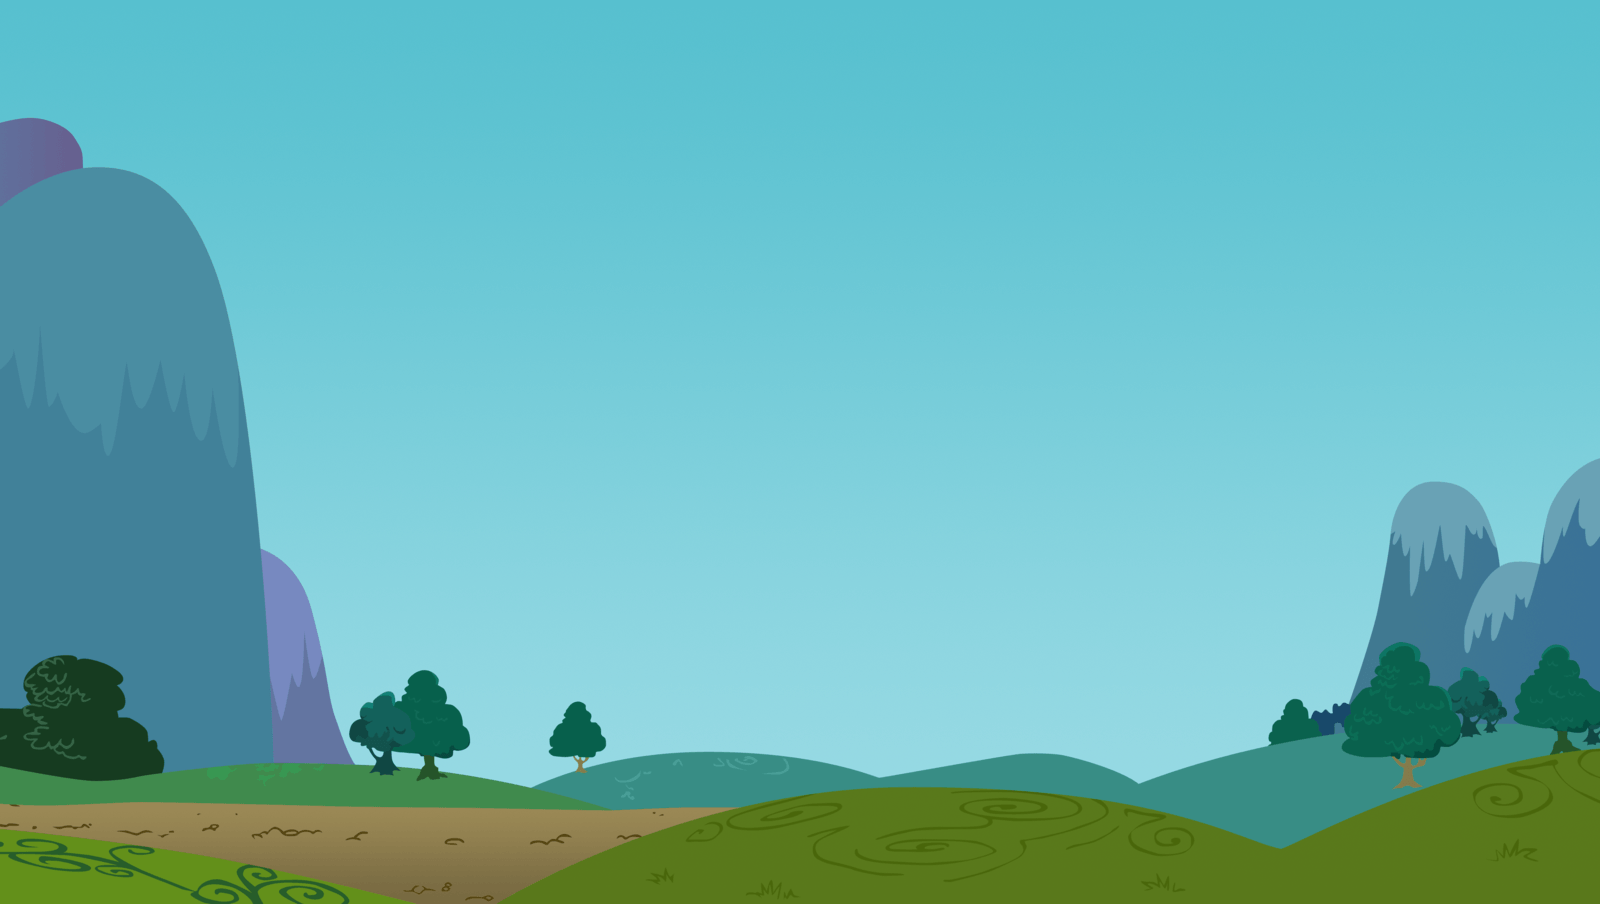 mlp background pony wallpapers - photo #35